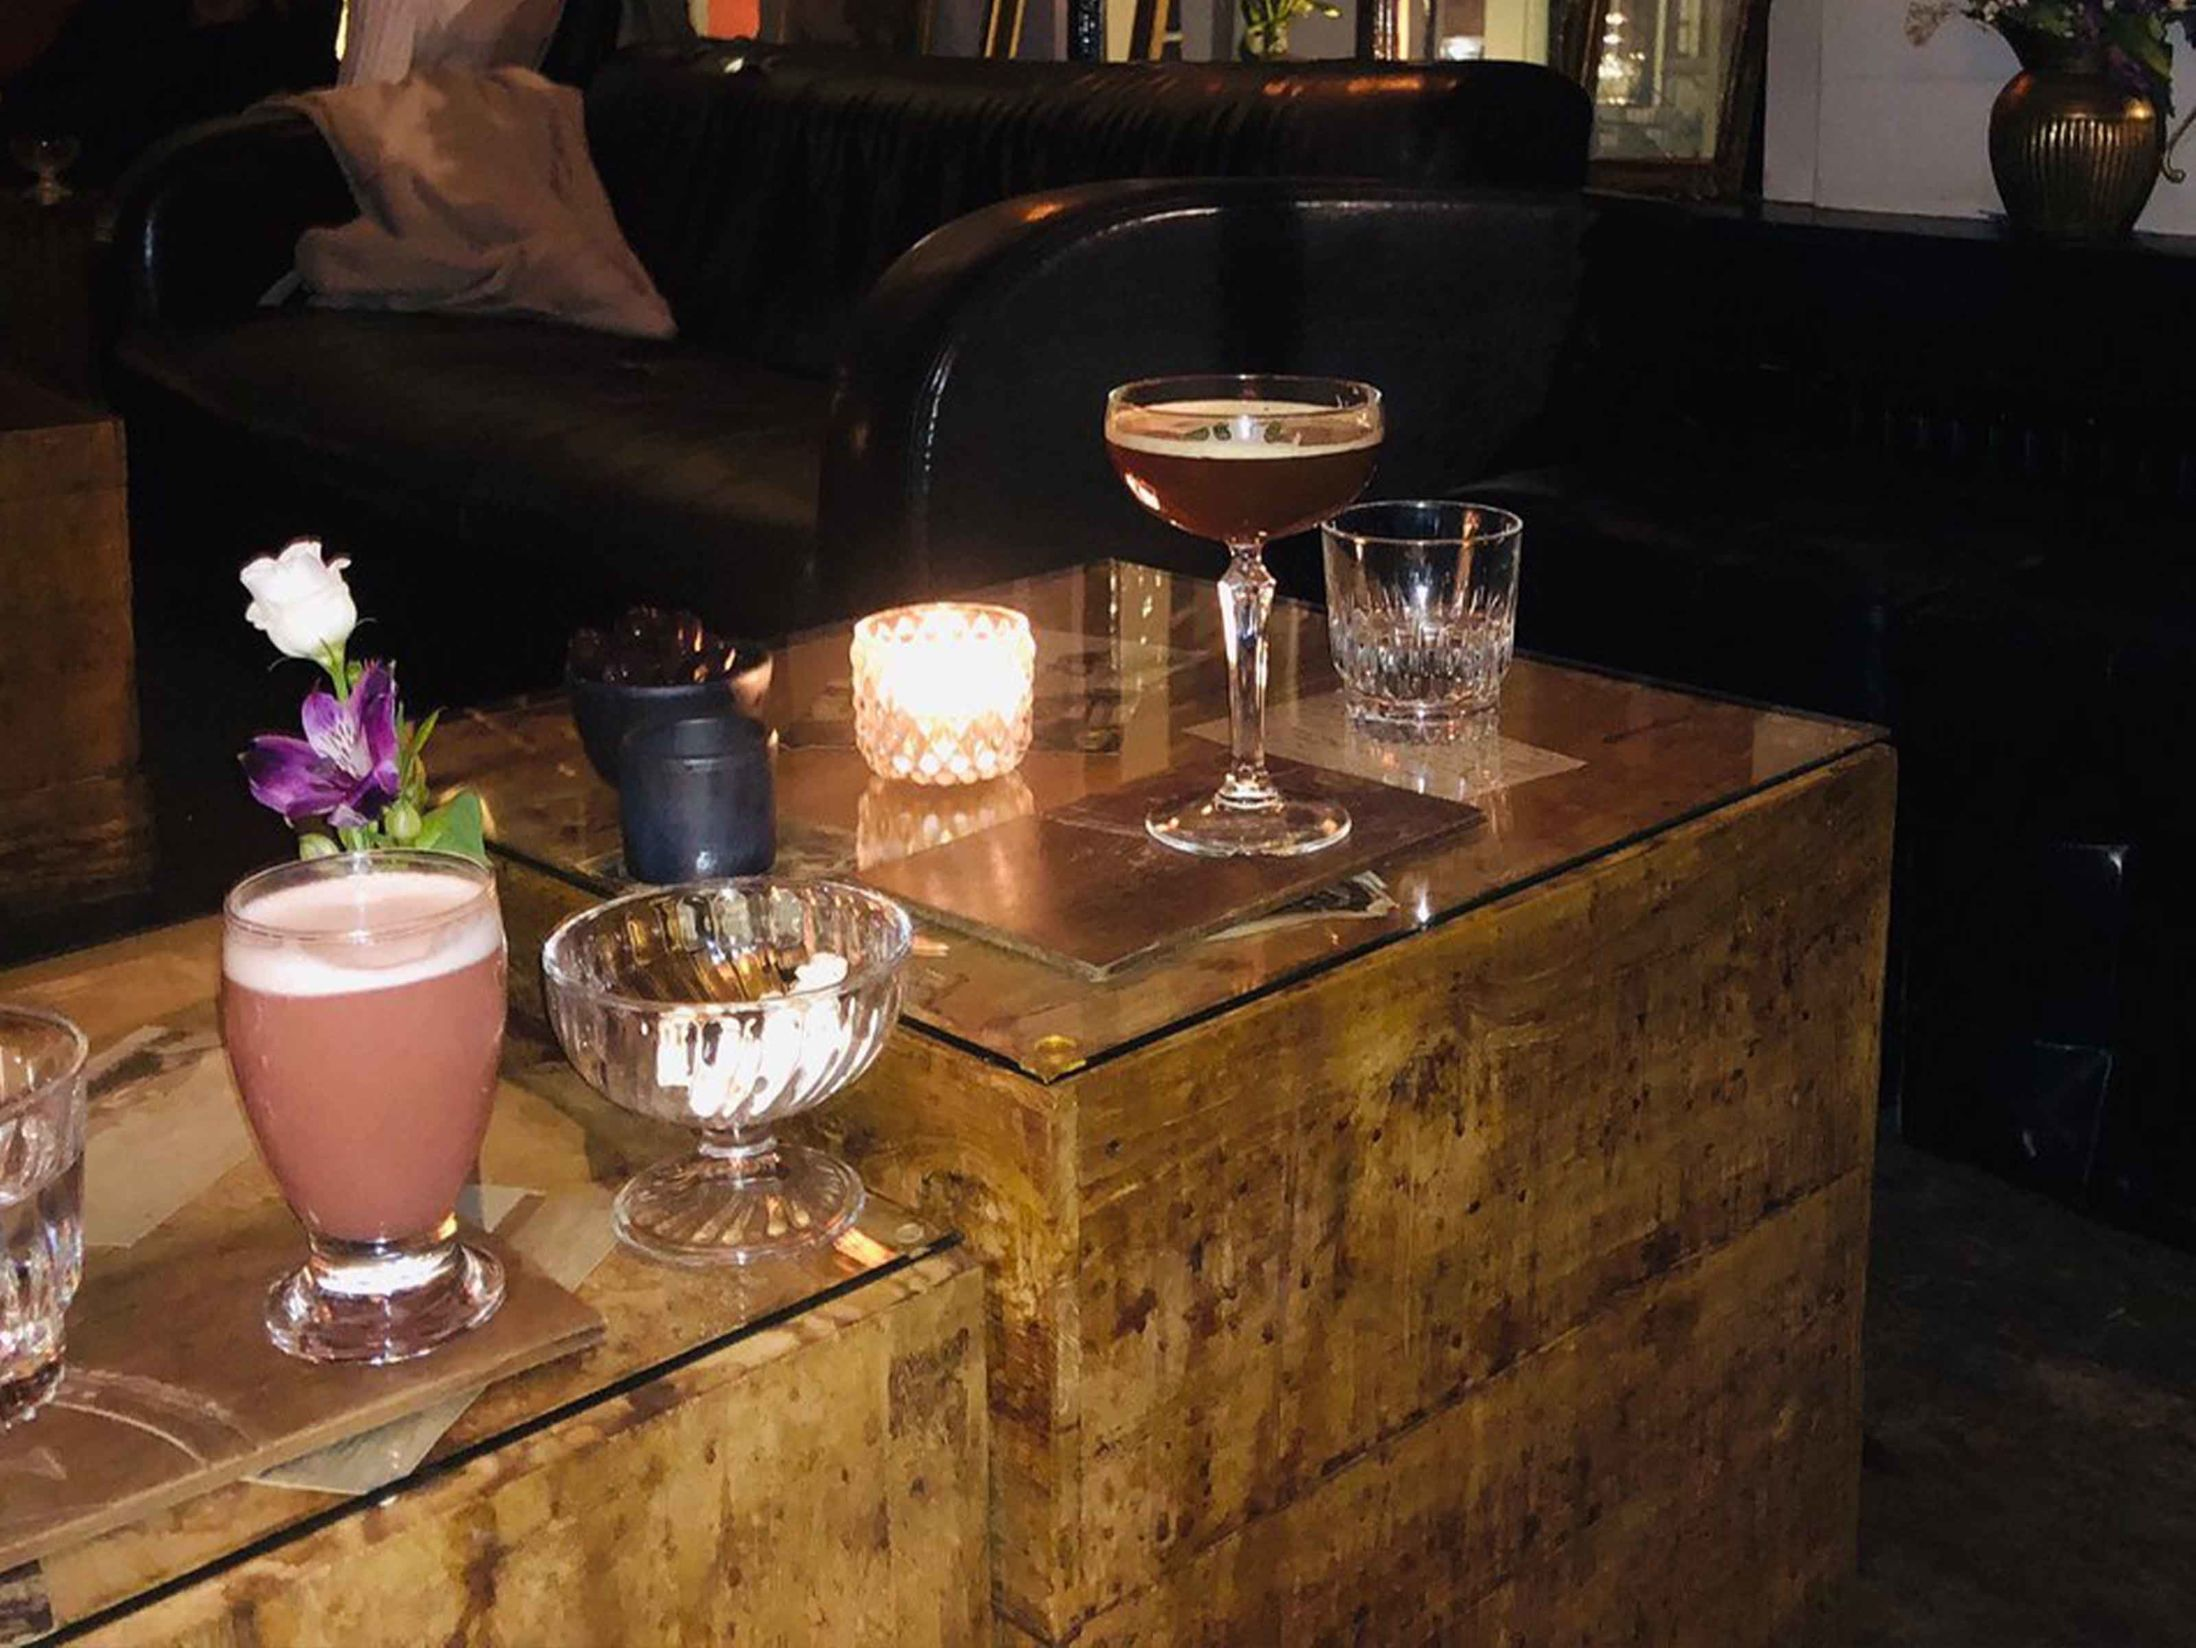 Best Bars in Amsterdam - Hiding in Plain Sight